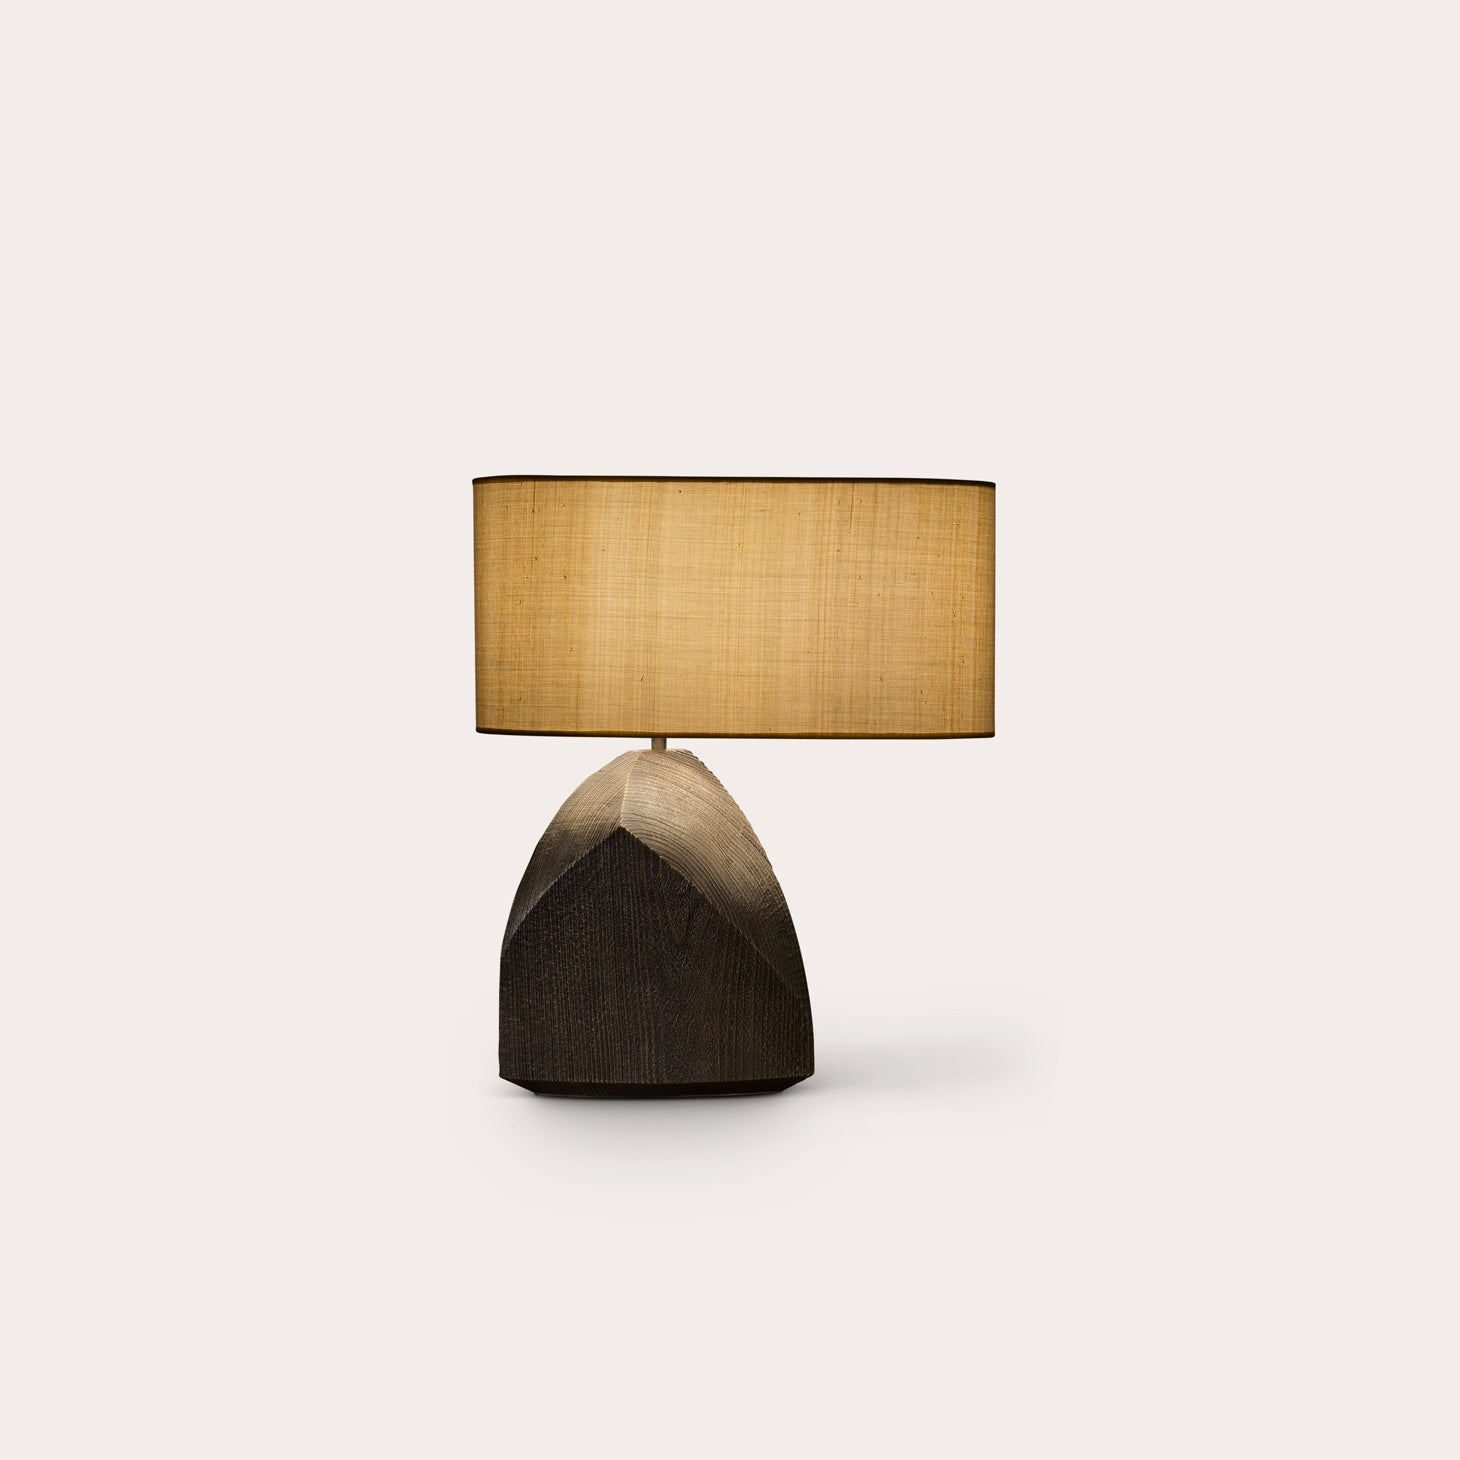 FARO Table Lamp Lighting Bruno Moinard Designer Furniture Sku: 773-160-10025